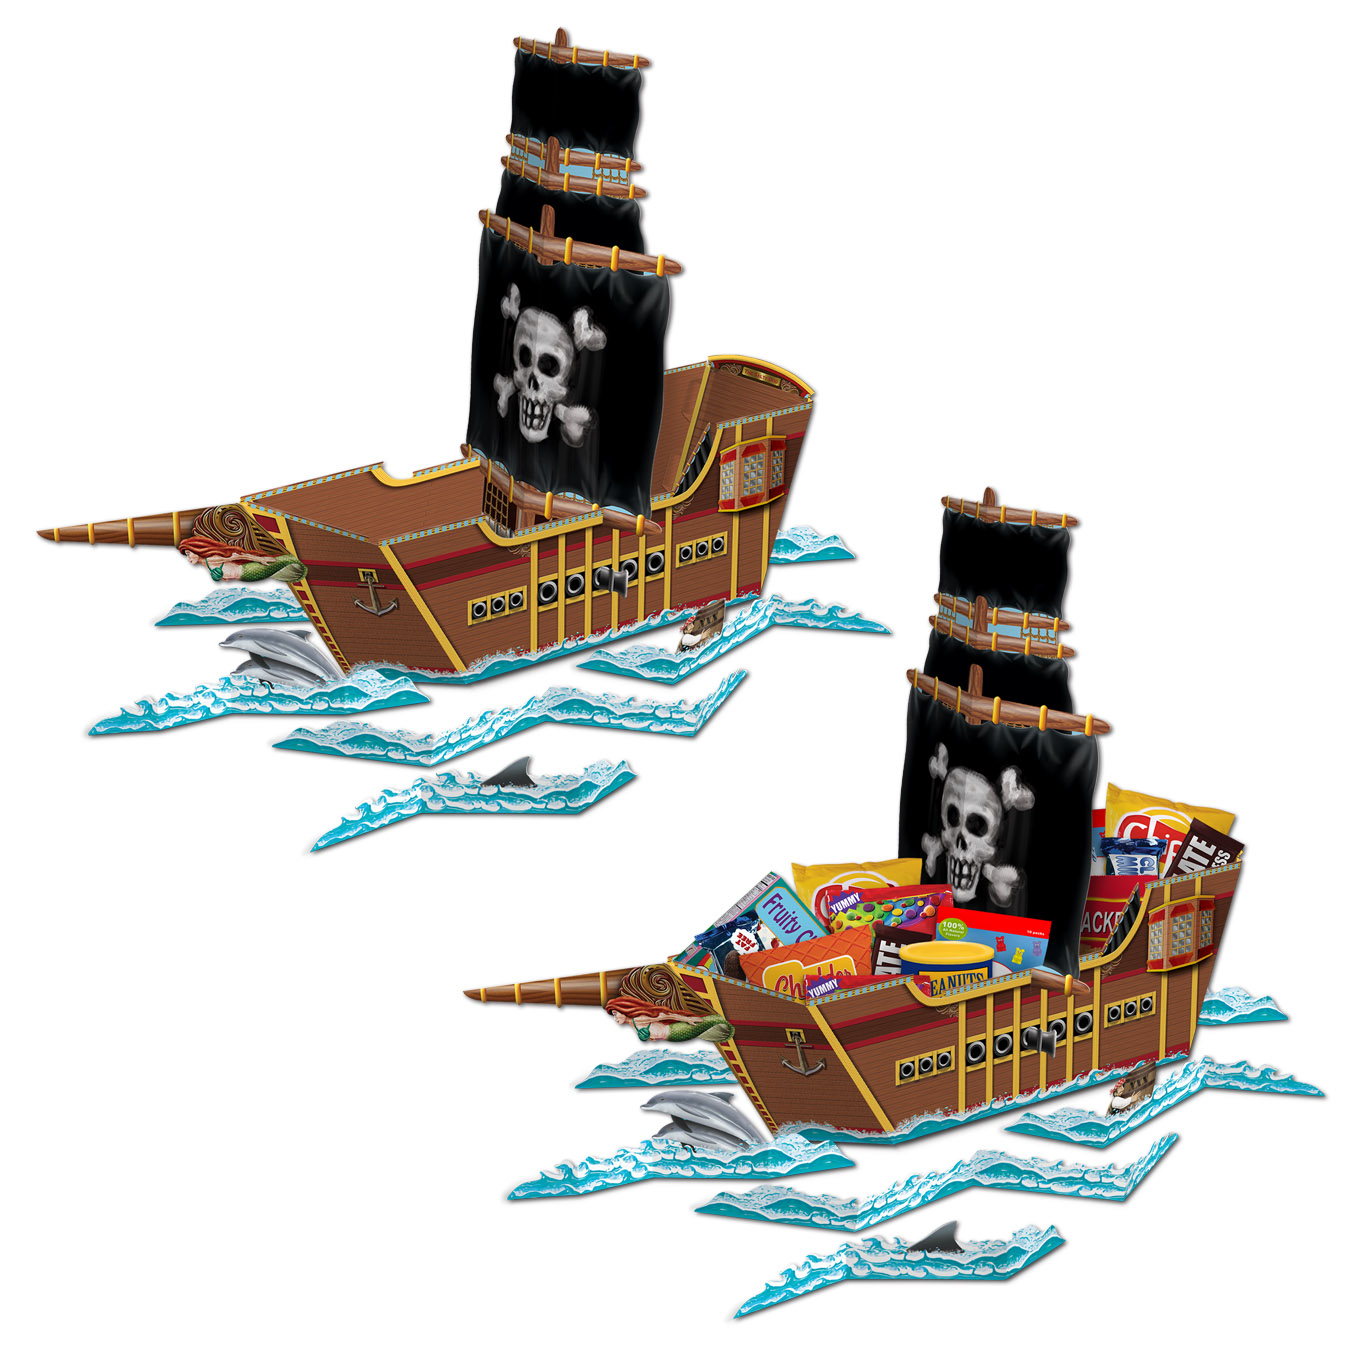 Pirate Ship Centerpiece (Pack of 12) candy holder, table centerpiece, pirate, pirate ship, pirate party